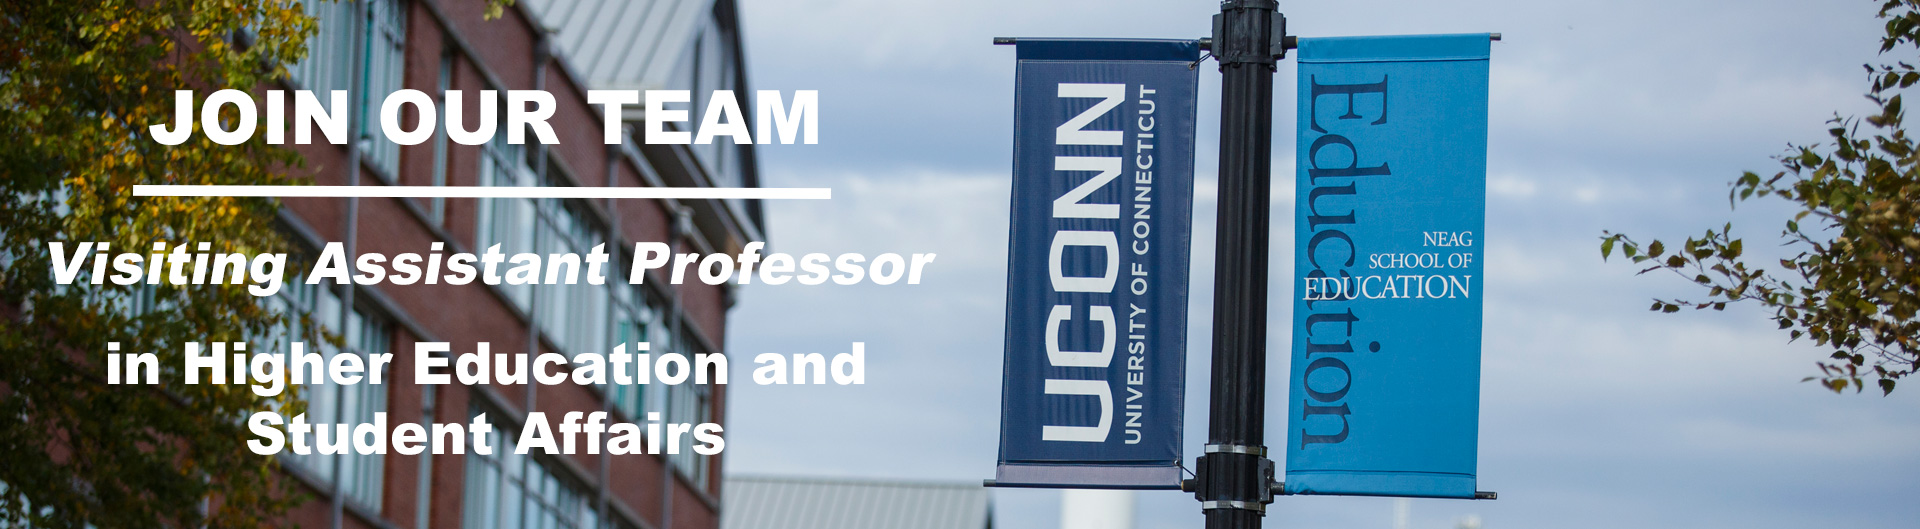 UConn Neag flags. Text reads: Join Our Team, Visiting Assistant Professor in Higher Education and Student Affairs